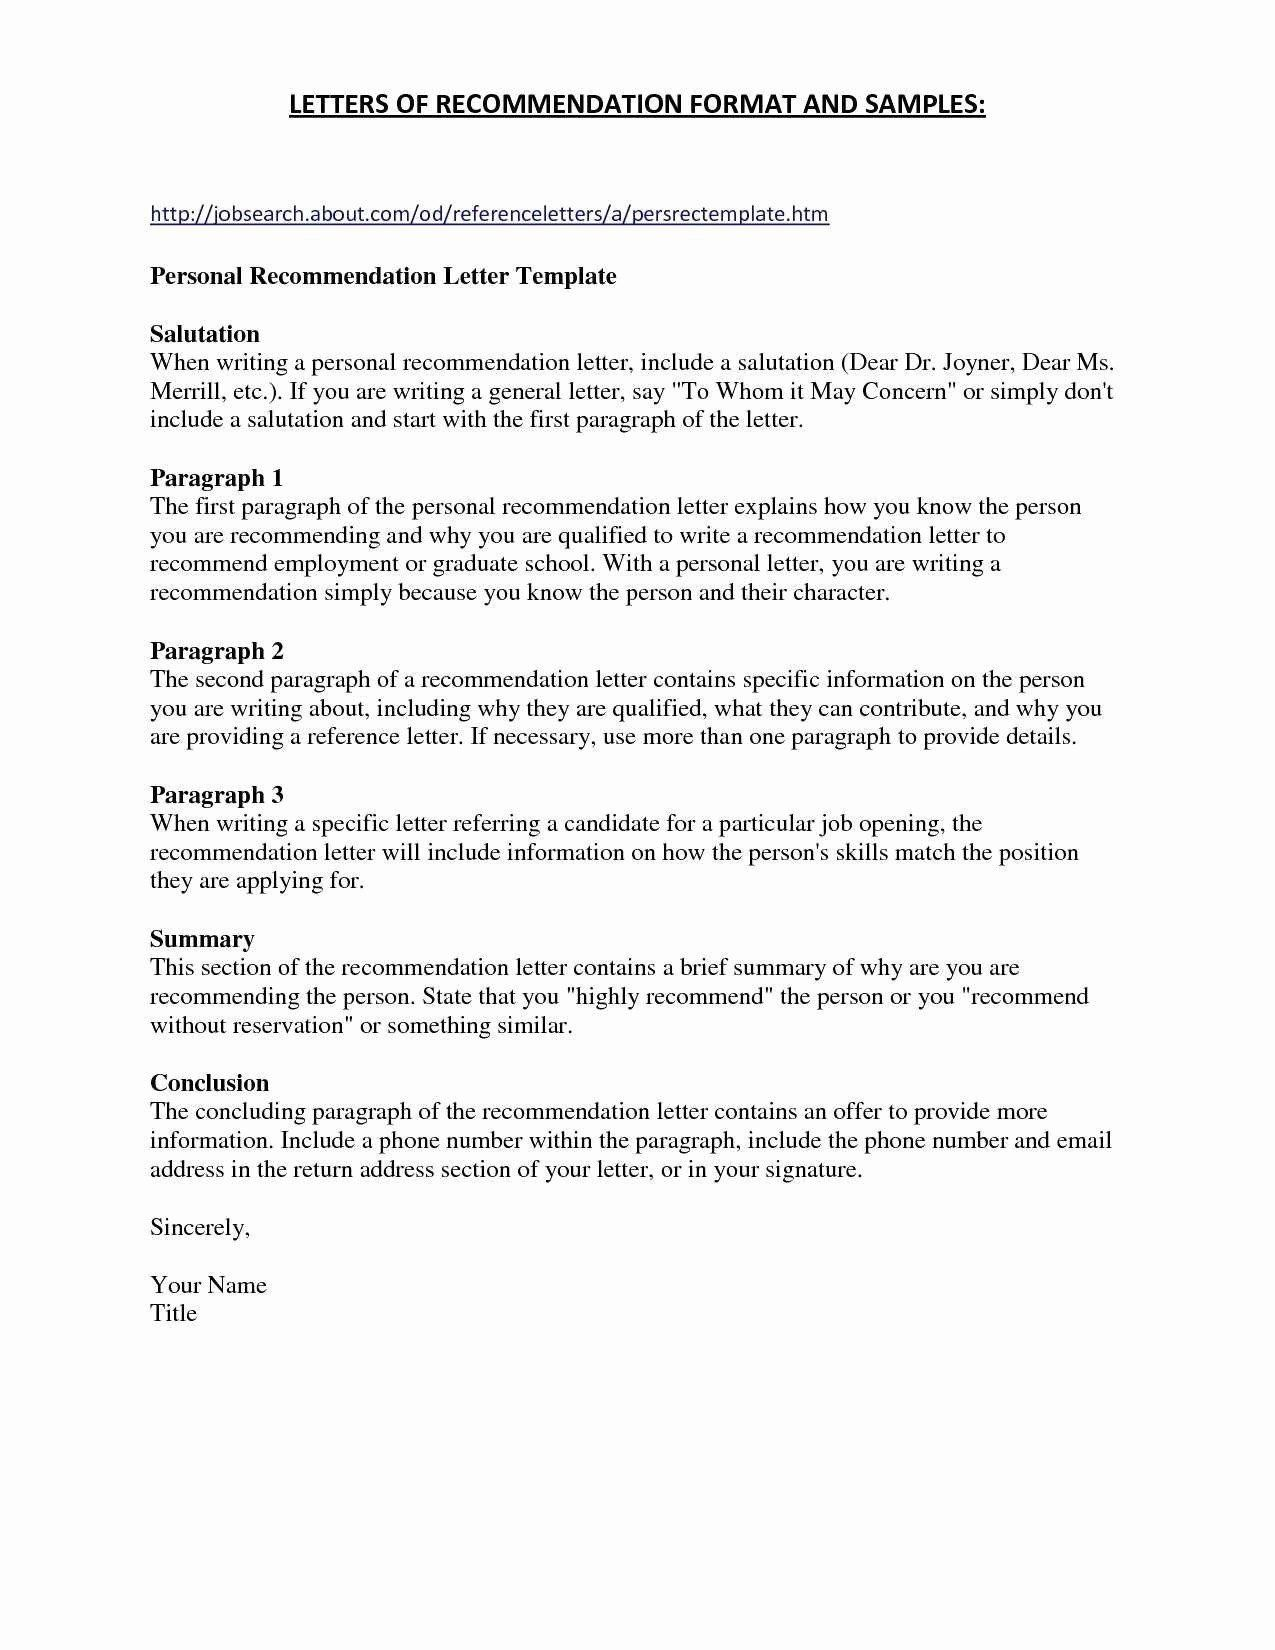 Office Manager Job Description For Resume Hairstyles Fice Manager Resume Template Enticing Fice Cover Letter For Resume Letter Templates Lettering